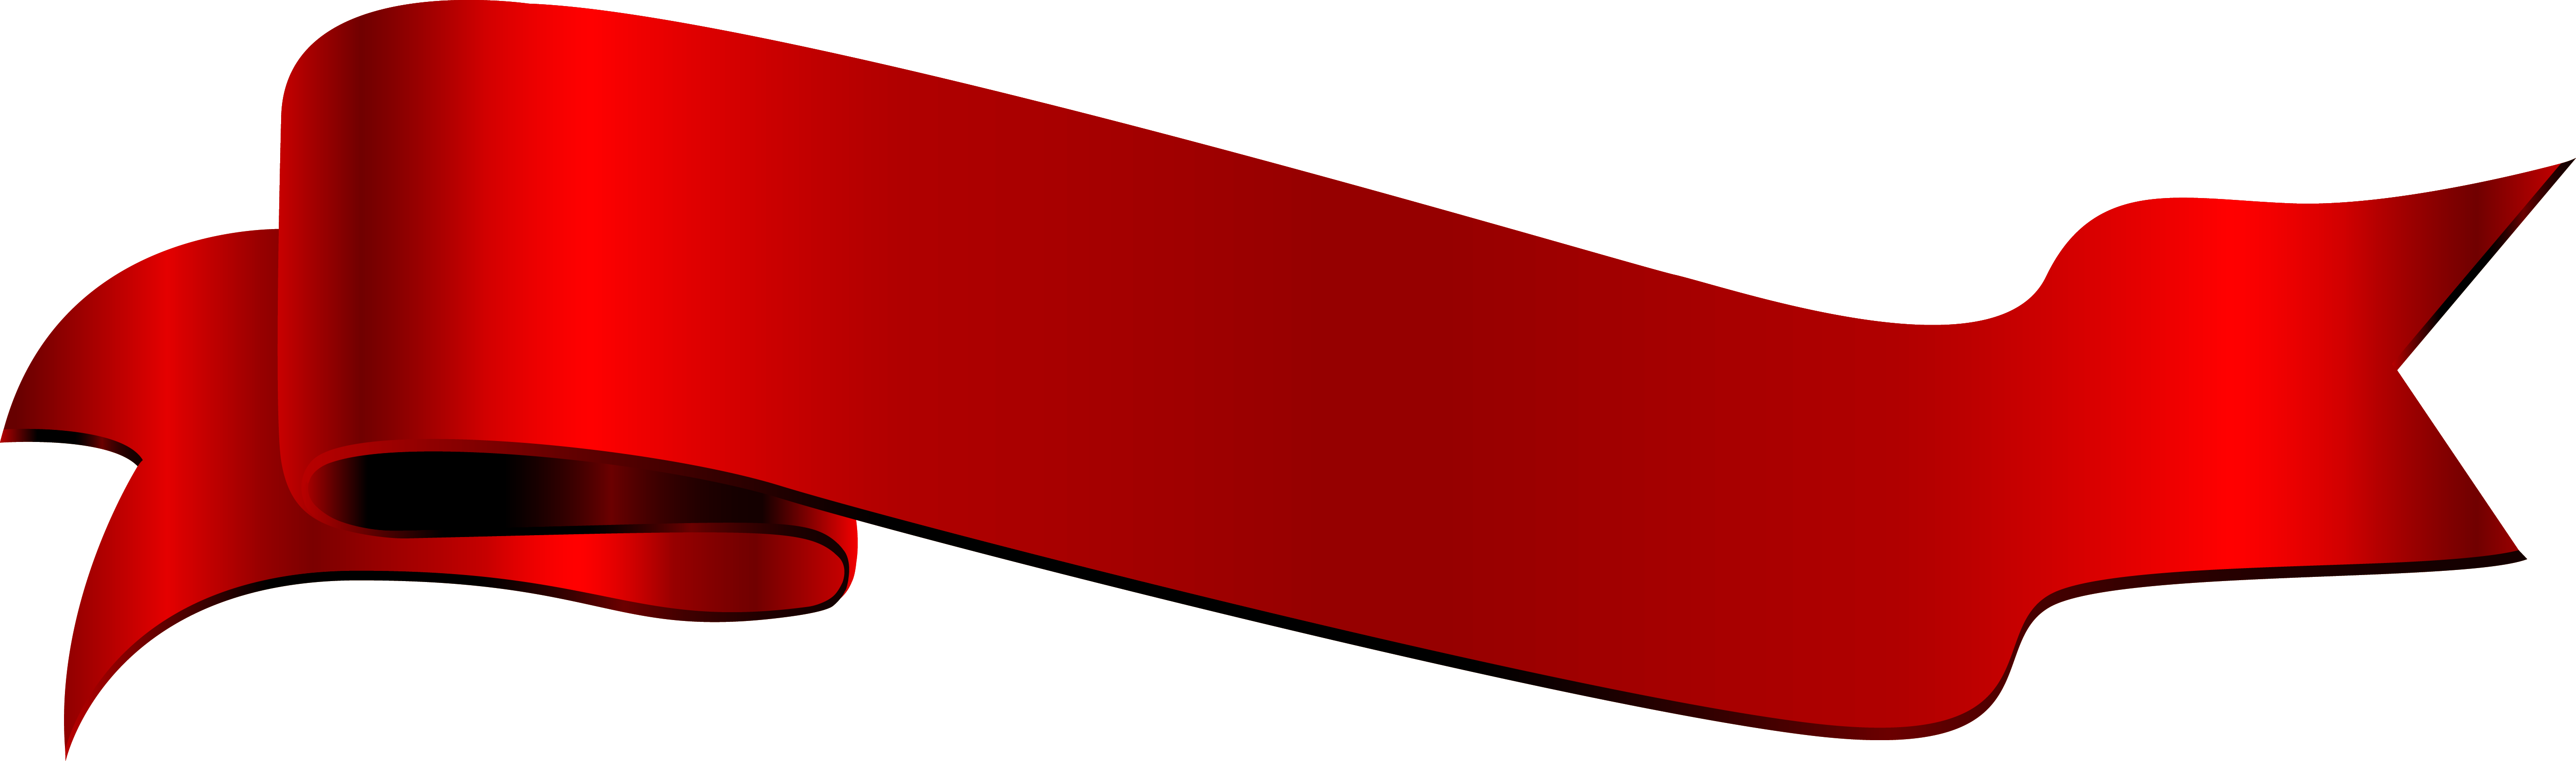 Red ribbon png. Angle font label transprent